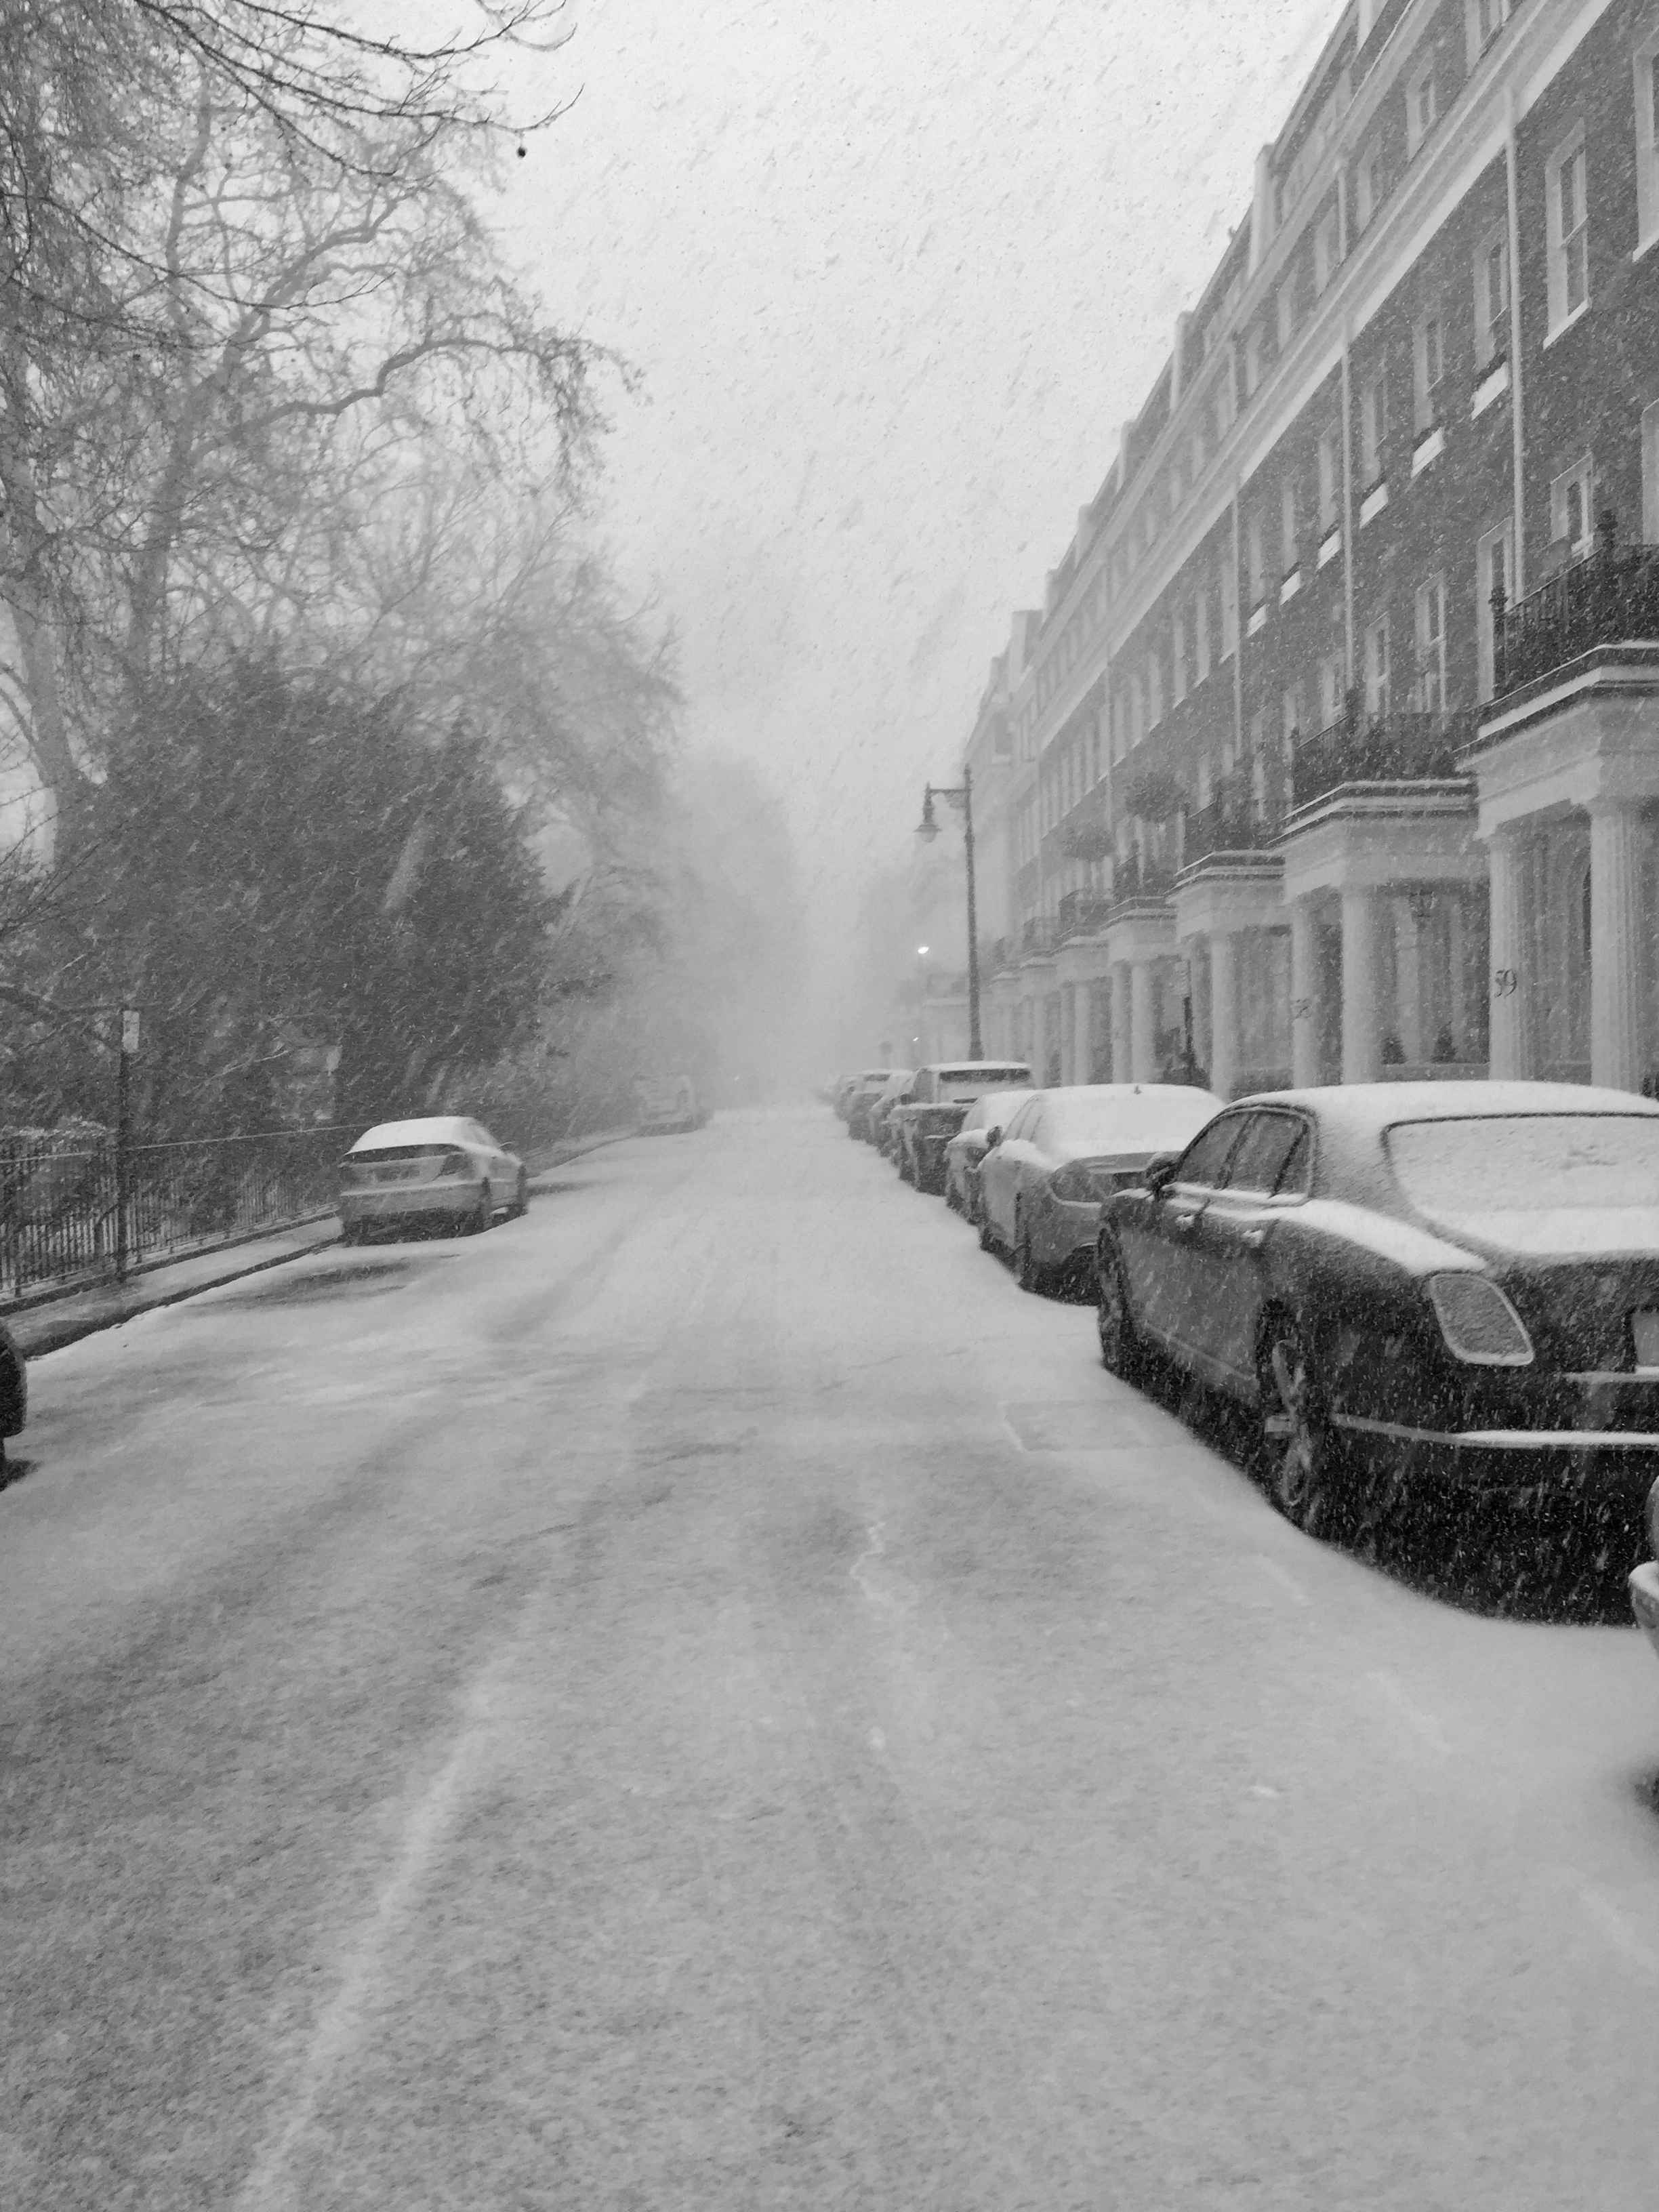 Snow in Eaton Square